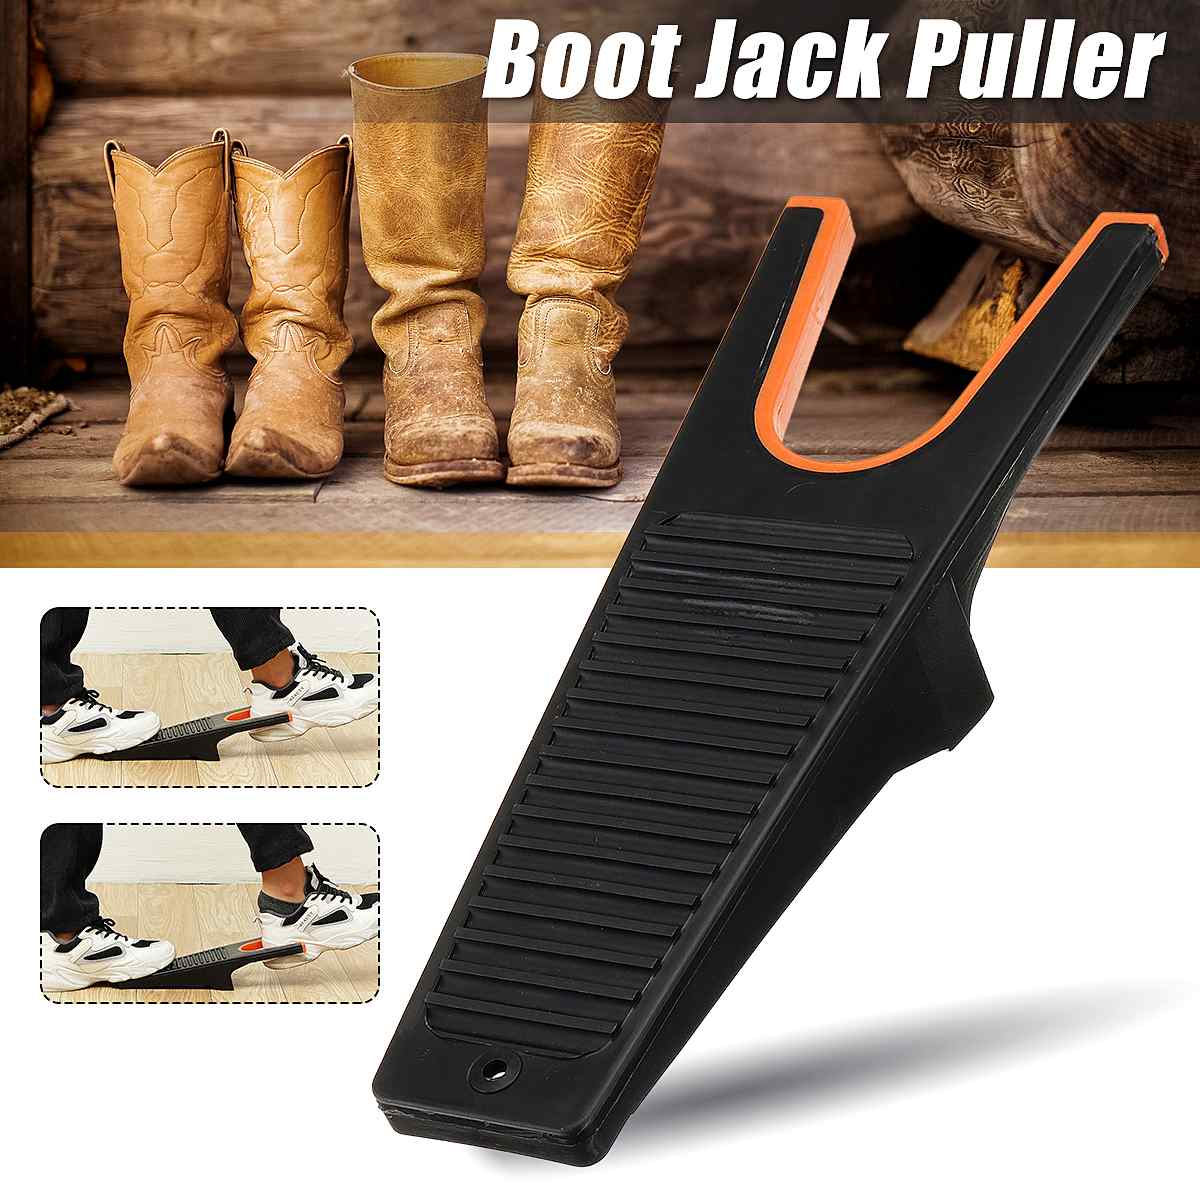 Shoe Horn Boot Puller Shoe Foot Jack Scraper Remover Pull Shoes Lifter Accessories Durable Hands Free Shoehorn Wearing Tool